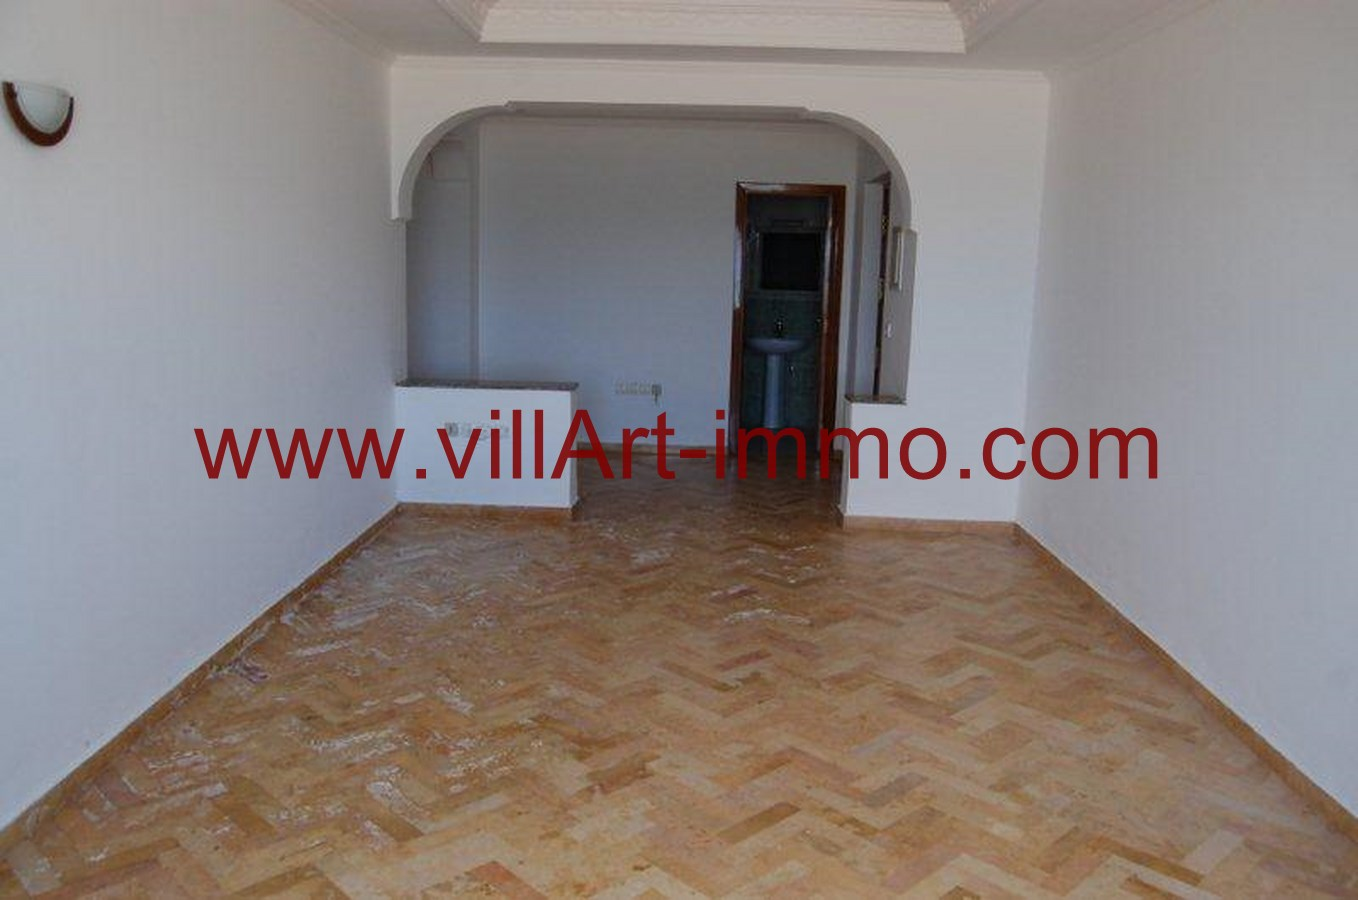 1-location-appartement-non-meuble-centre-ville-tanger-salon-l784-villart-immo